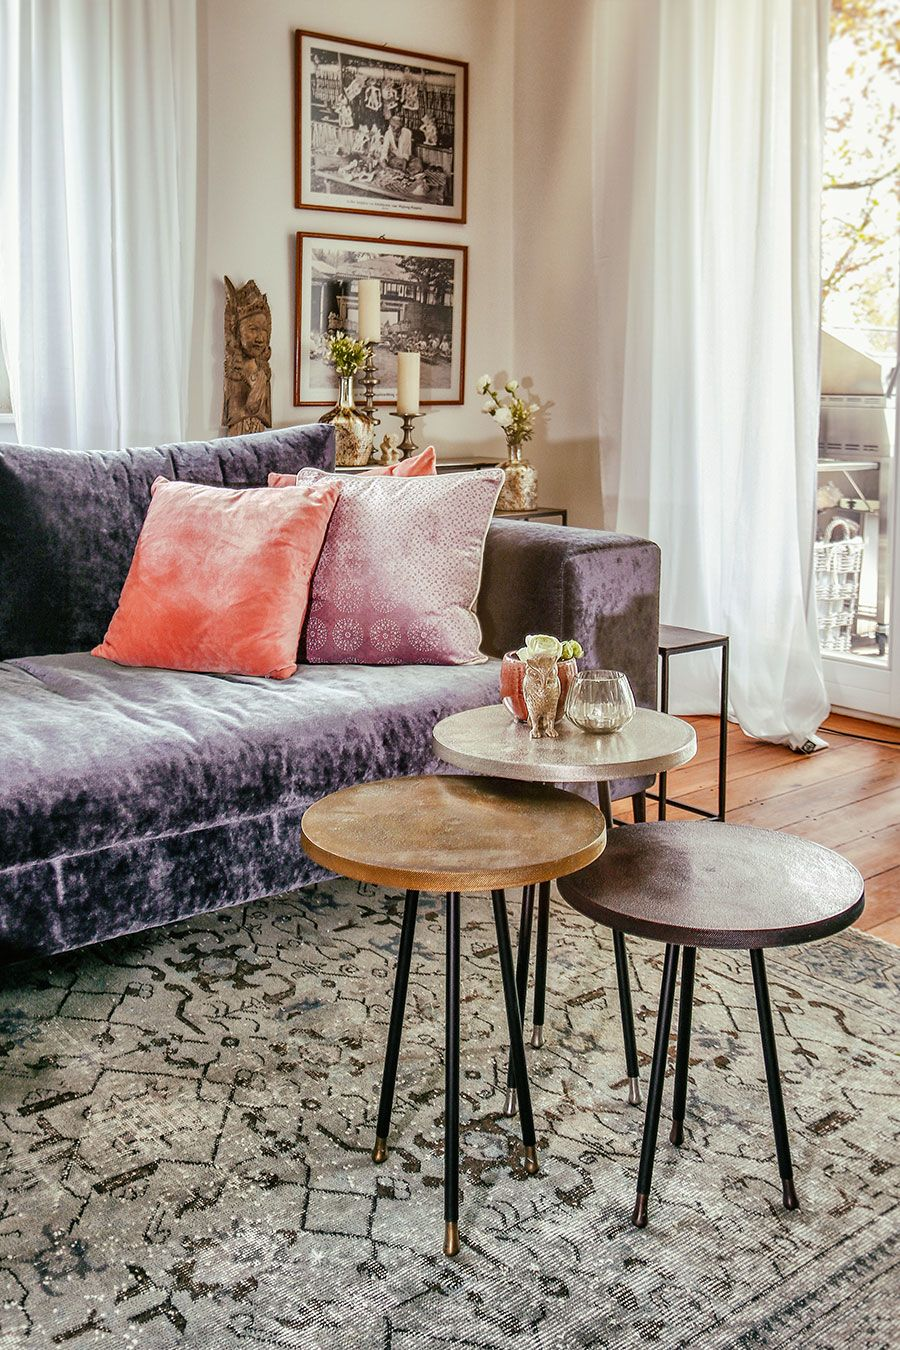 Couchtisch messing silber kupfer moods in 2019 pinterest tisch kupfer couchtisch und - Kupfer deko wohnzimmer ...